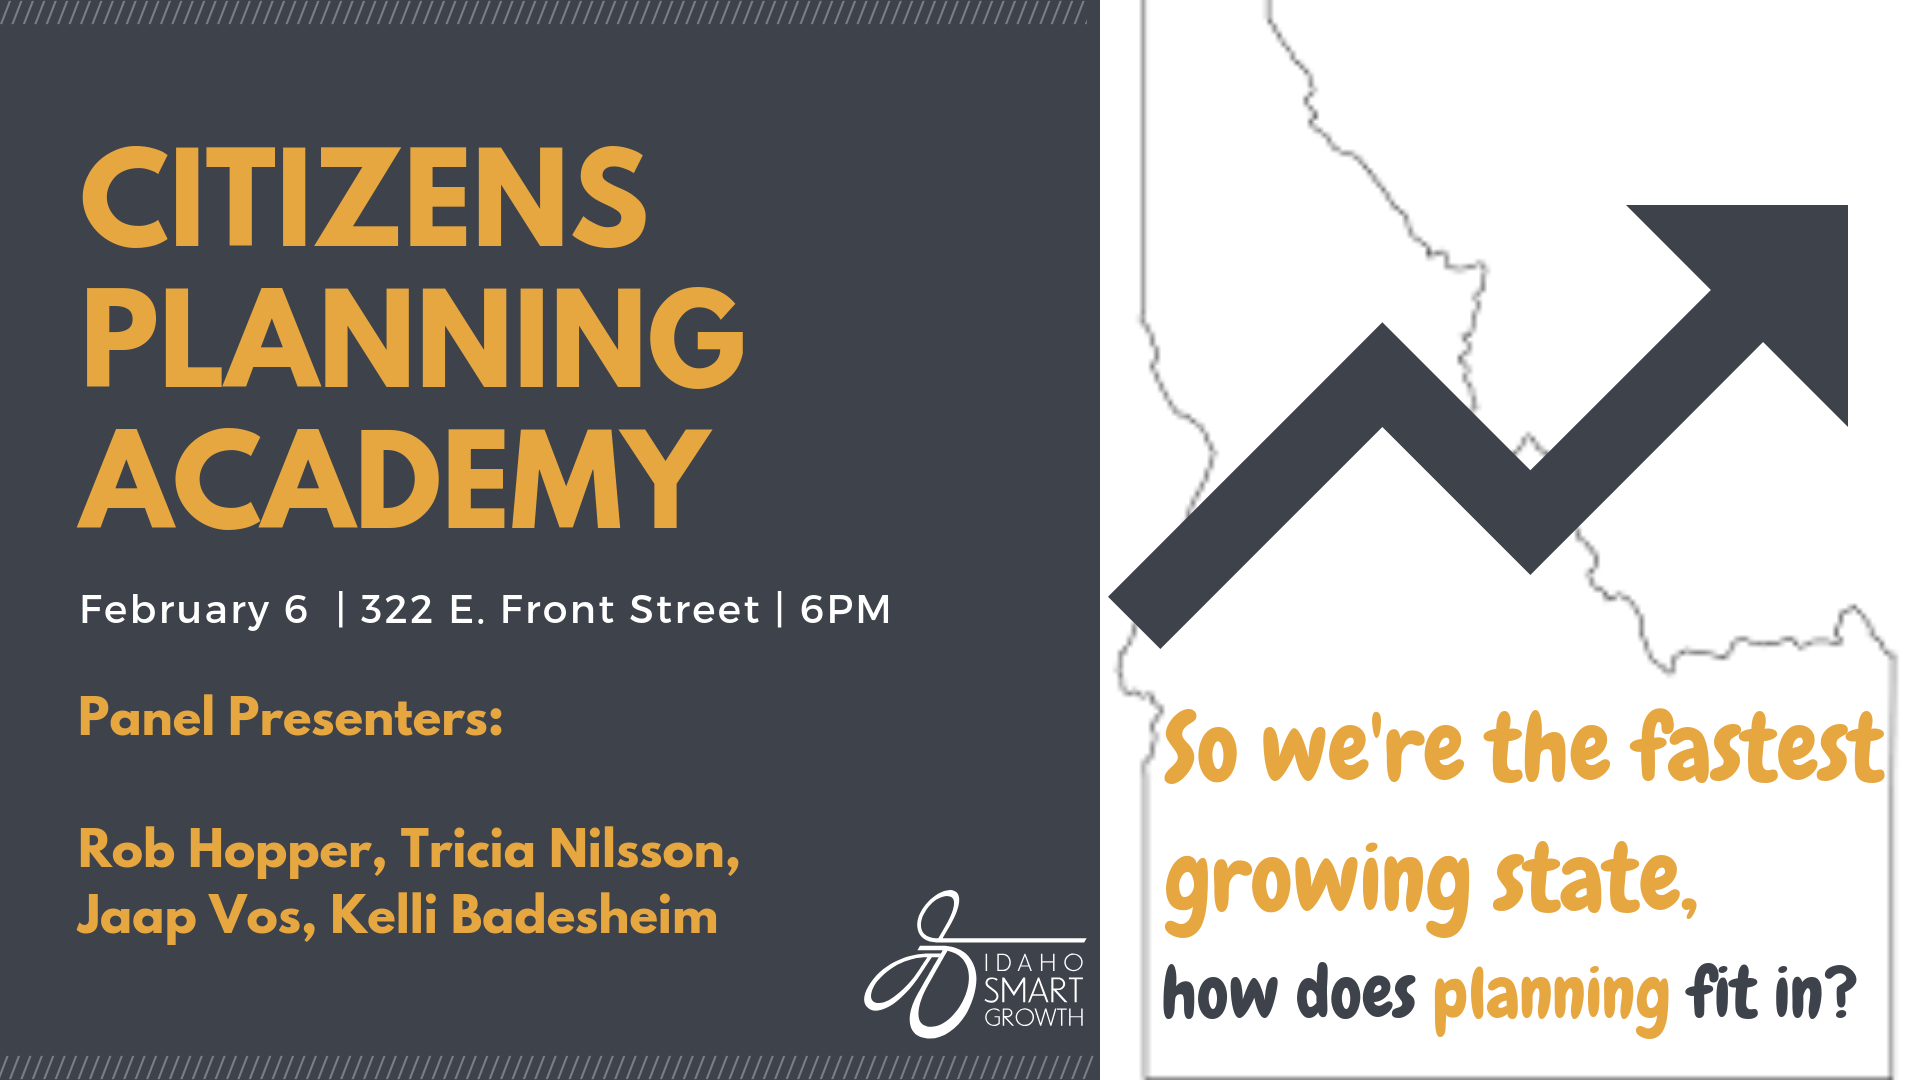 Citizens Planning Academy: So we're the fastest growing